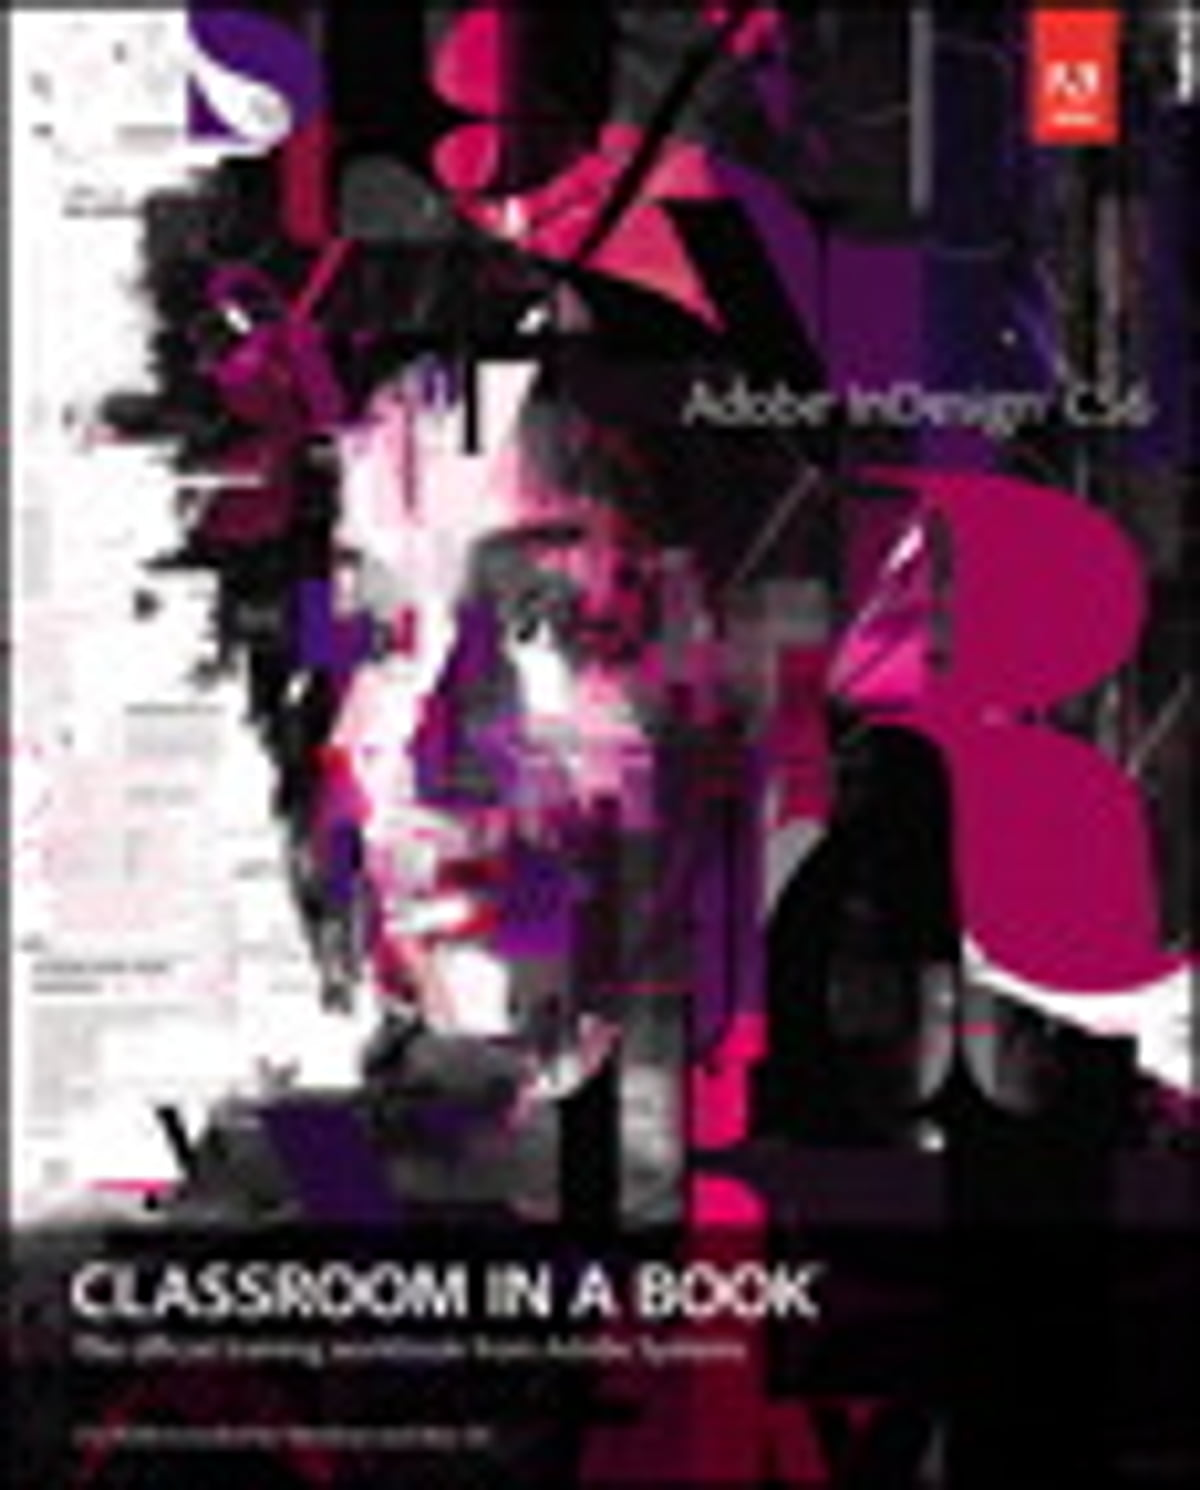 Should you buy Premiere Pro CS6 Classroom in a Book for your PC?